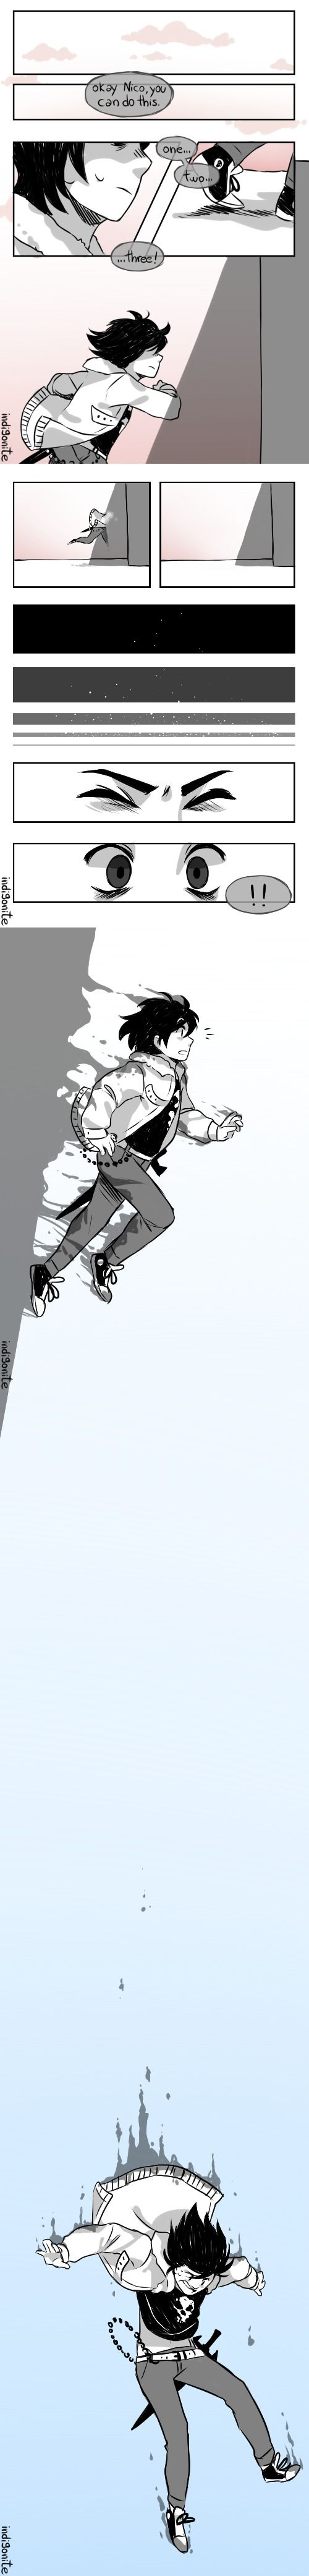 I wonder how many times Nico ended up on inconveniently high places when he was still learning how to shadow travel don't blame the boy, it's hard to concentrate | art by indigonite